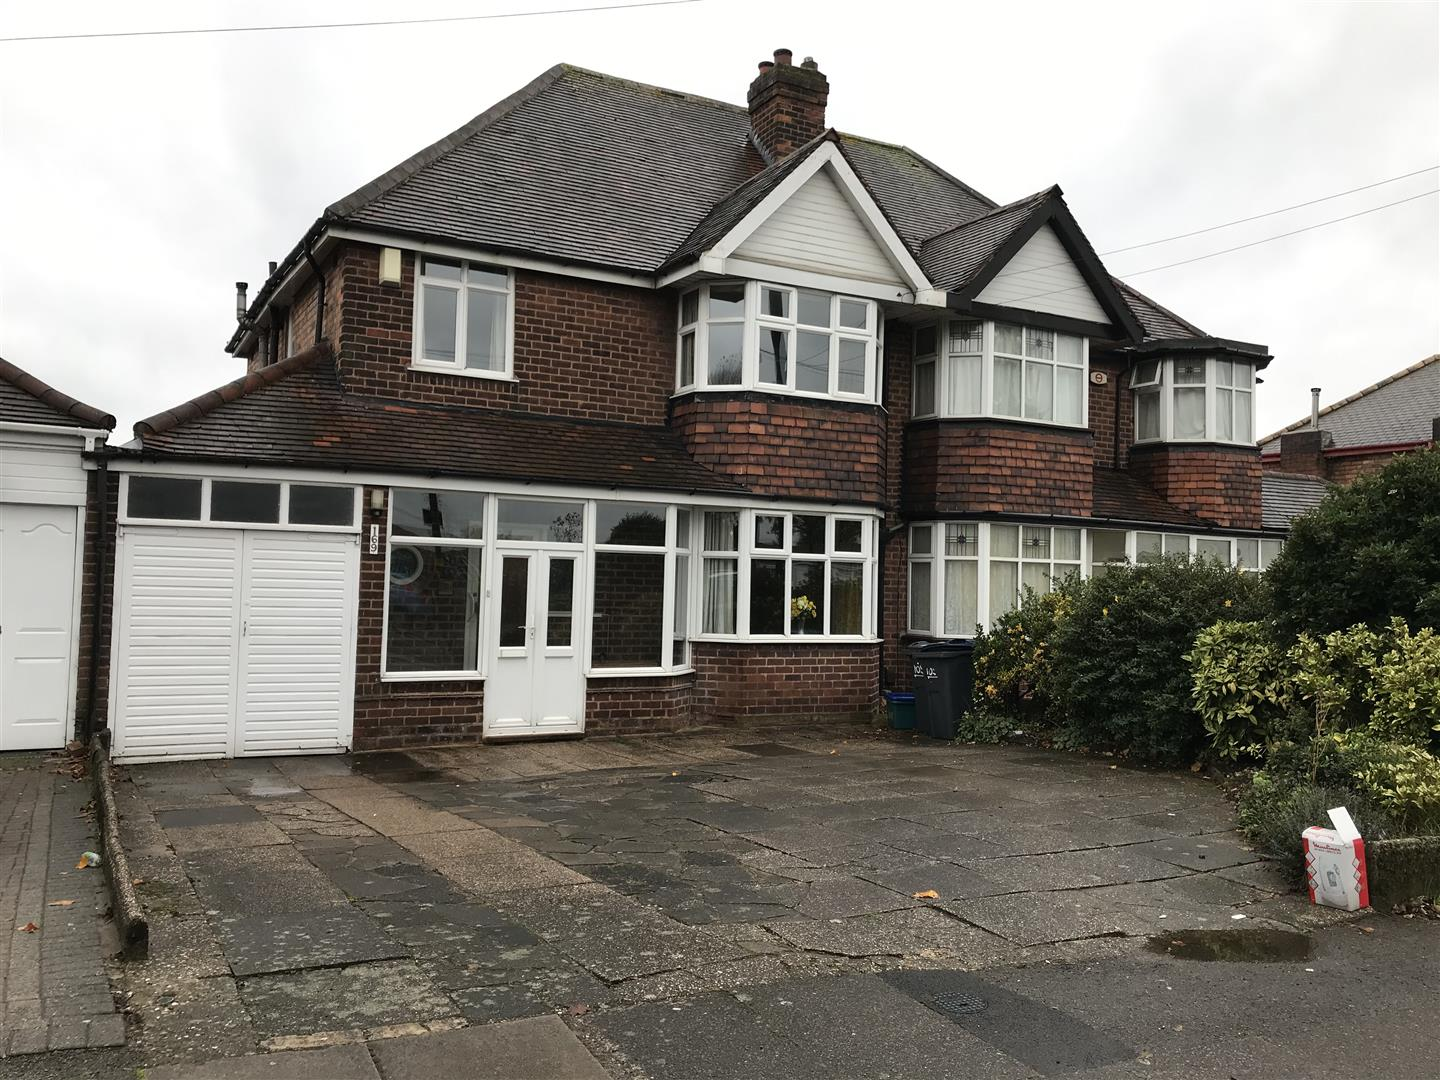 3 bed house for sale in Bromford Road, Hodge Hill, Birmingham - Property Image 1